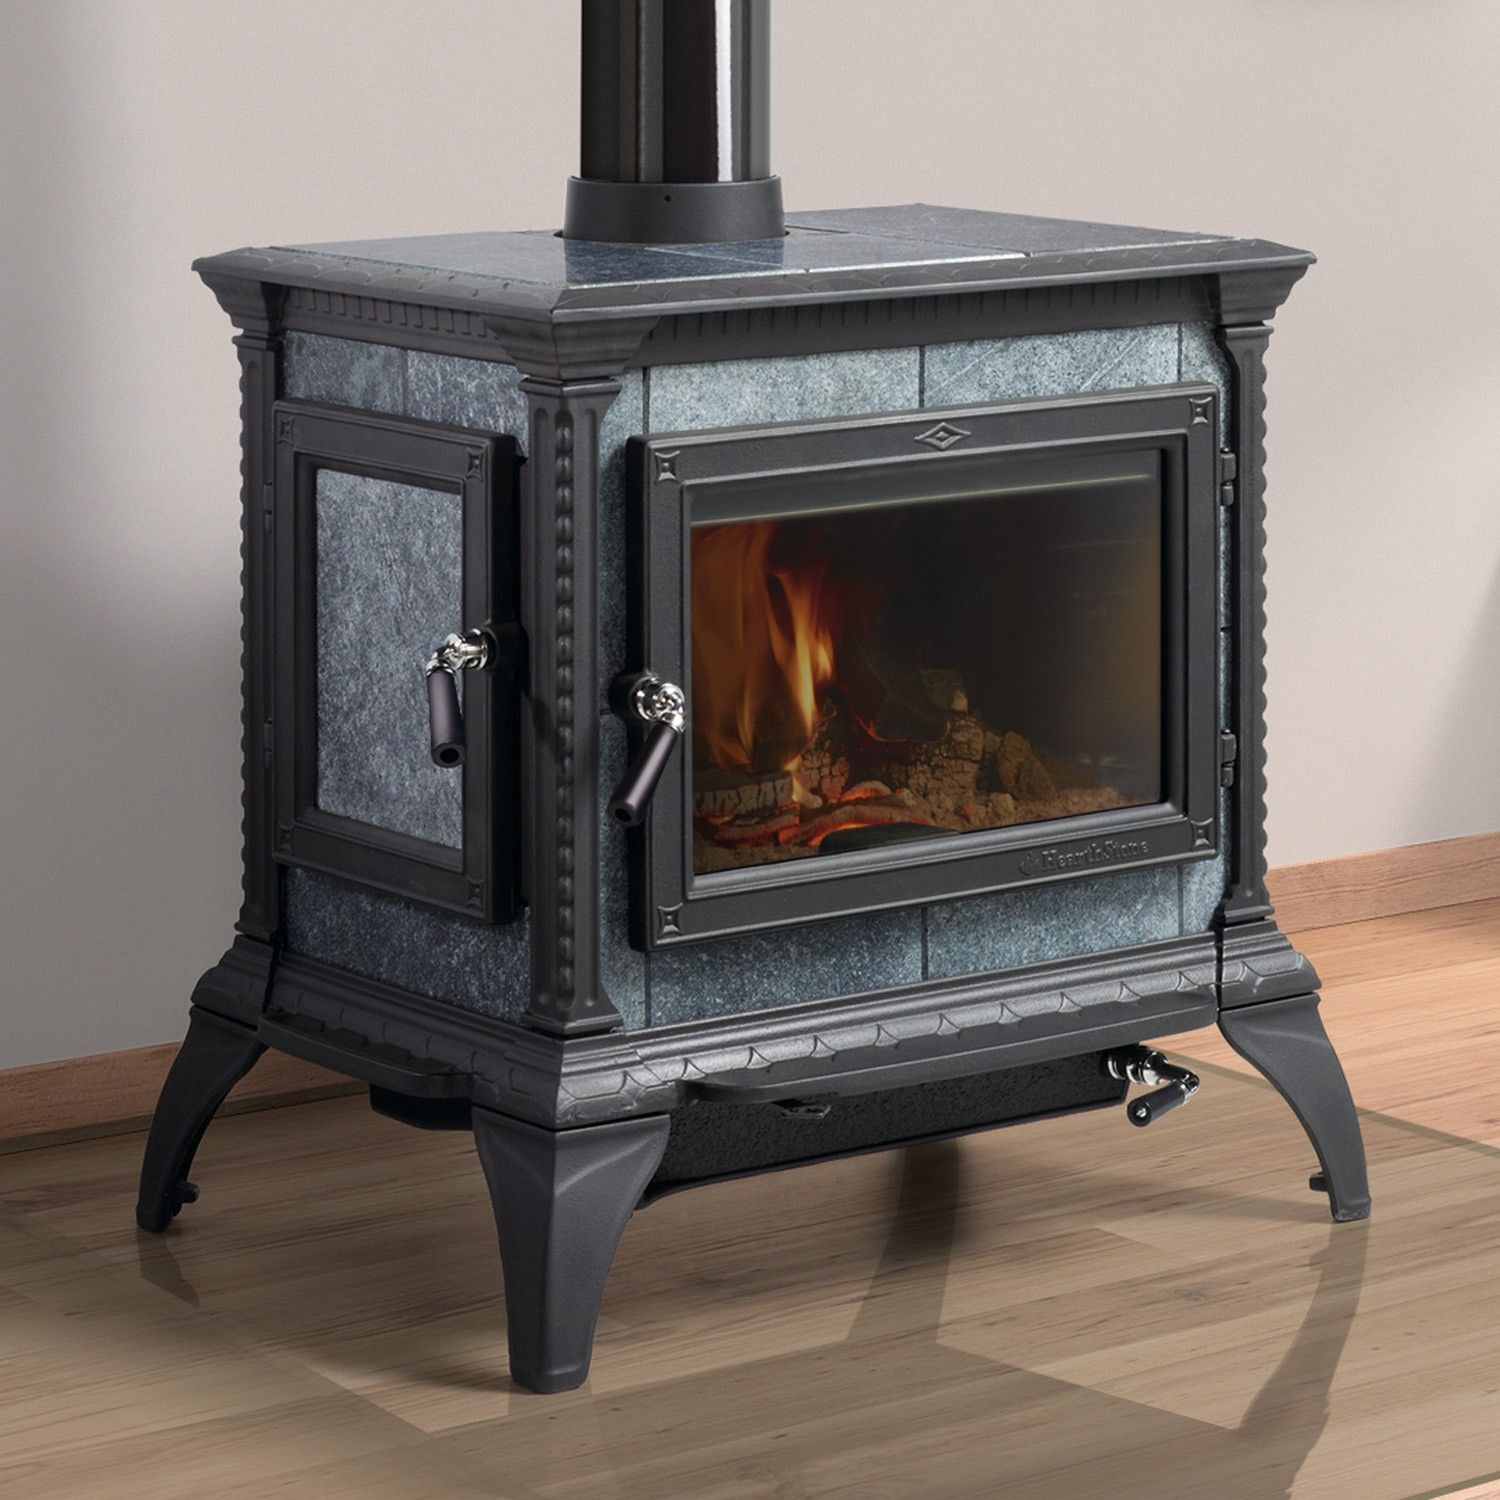 Heritage 8021 Wood Stoves Hearthstone Stoves Hearthstone Wood Stove Soapstone Wood Stove Wood Heat